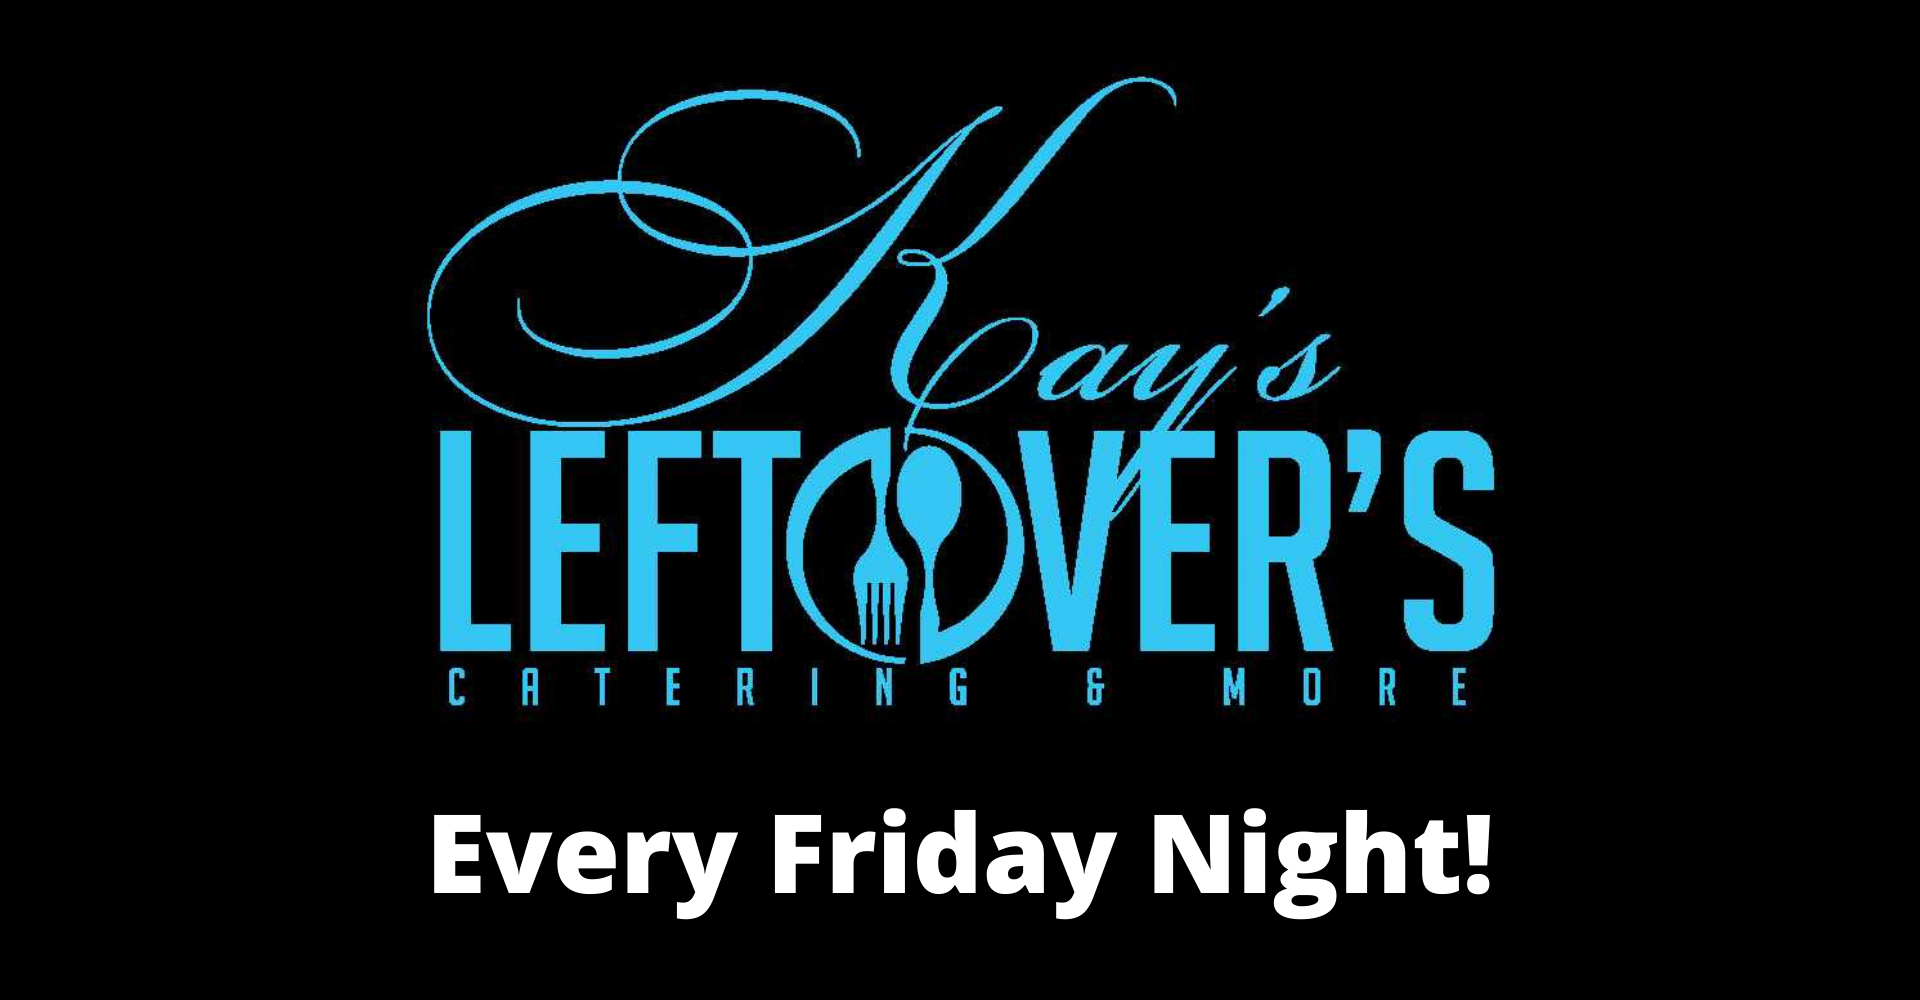 LIVE at Kay's Leftovers's-Every Friday